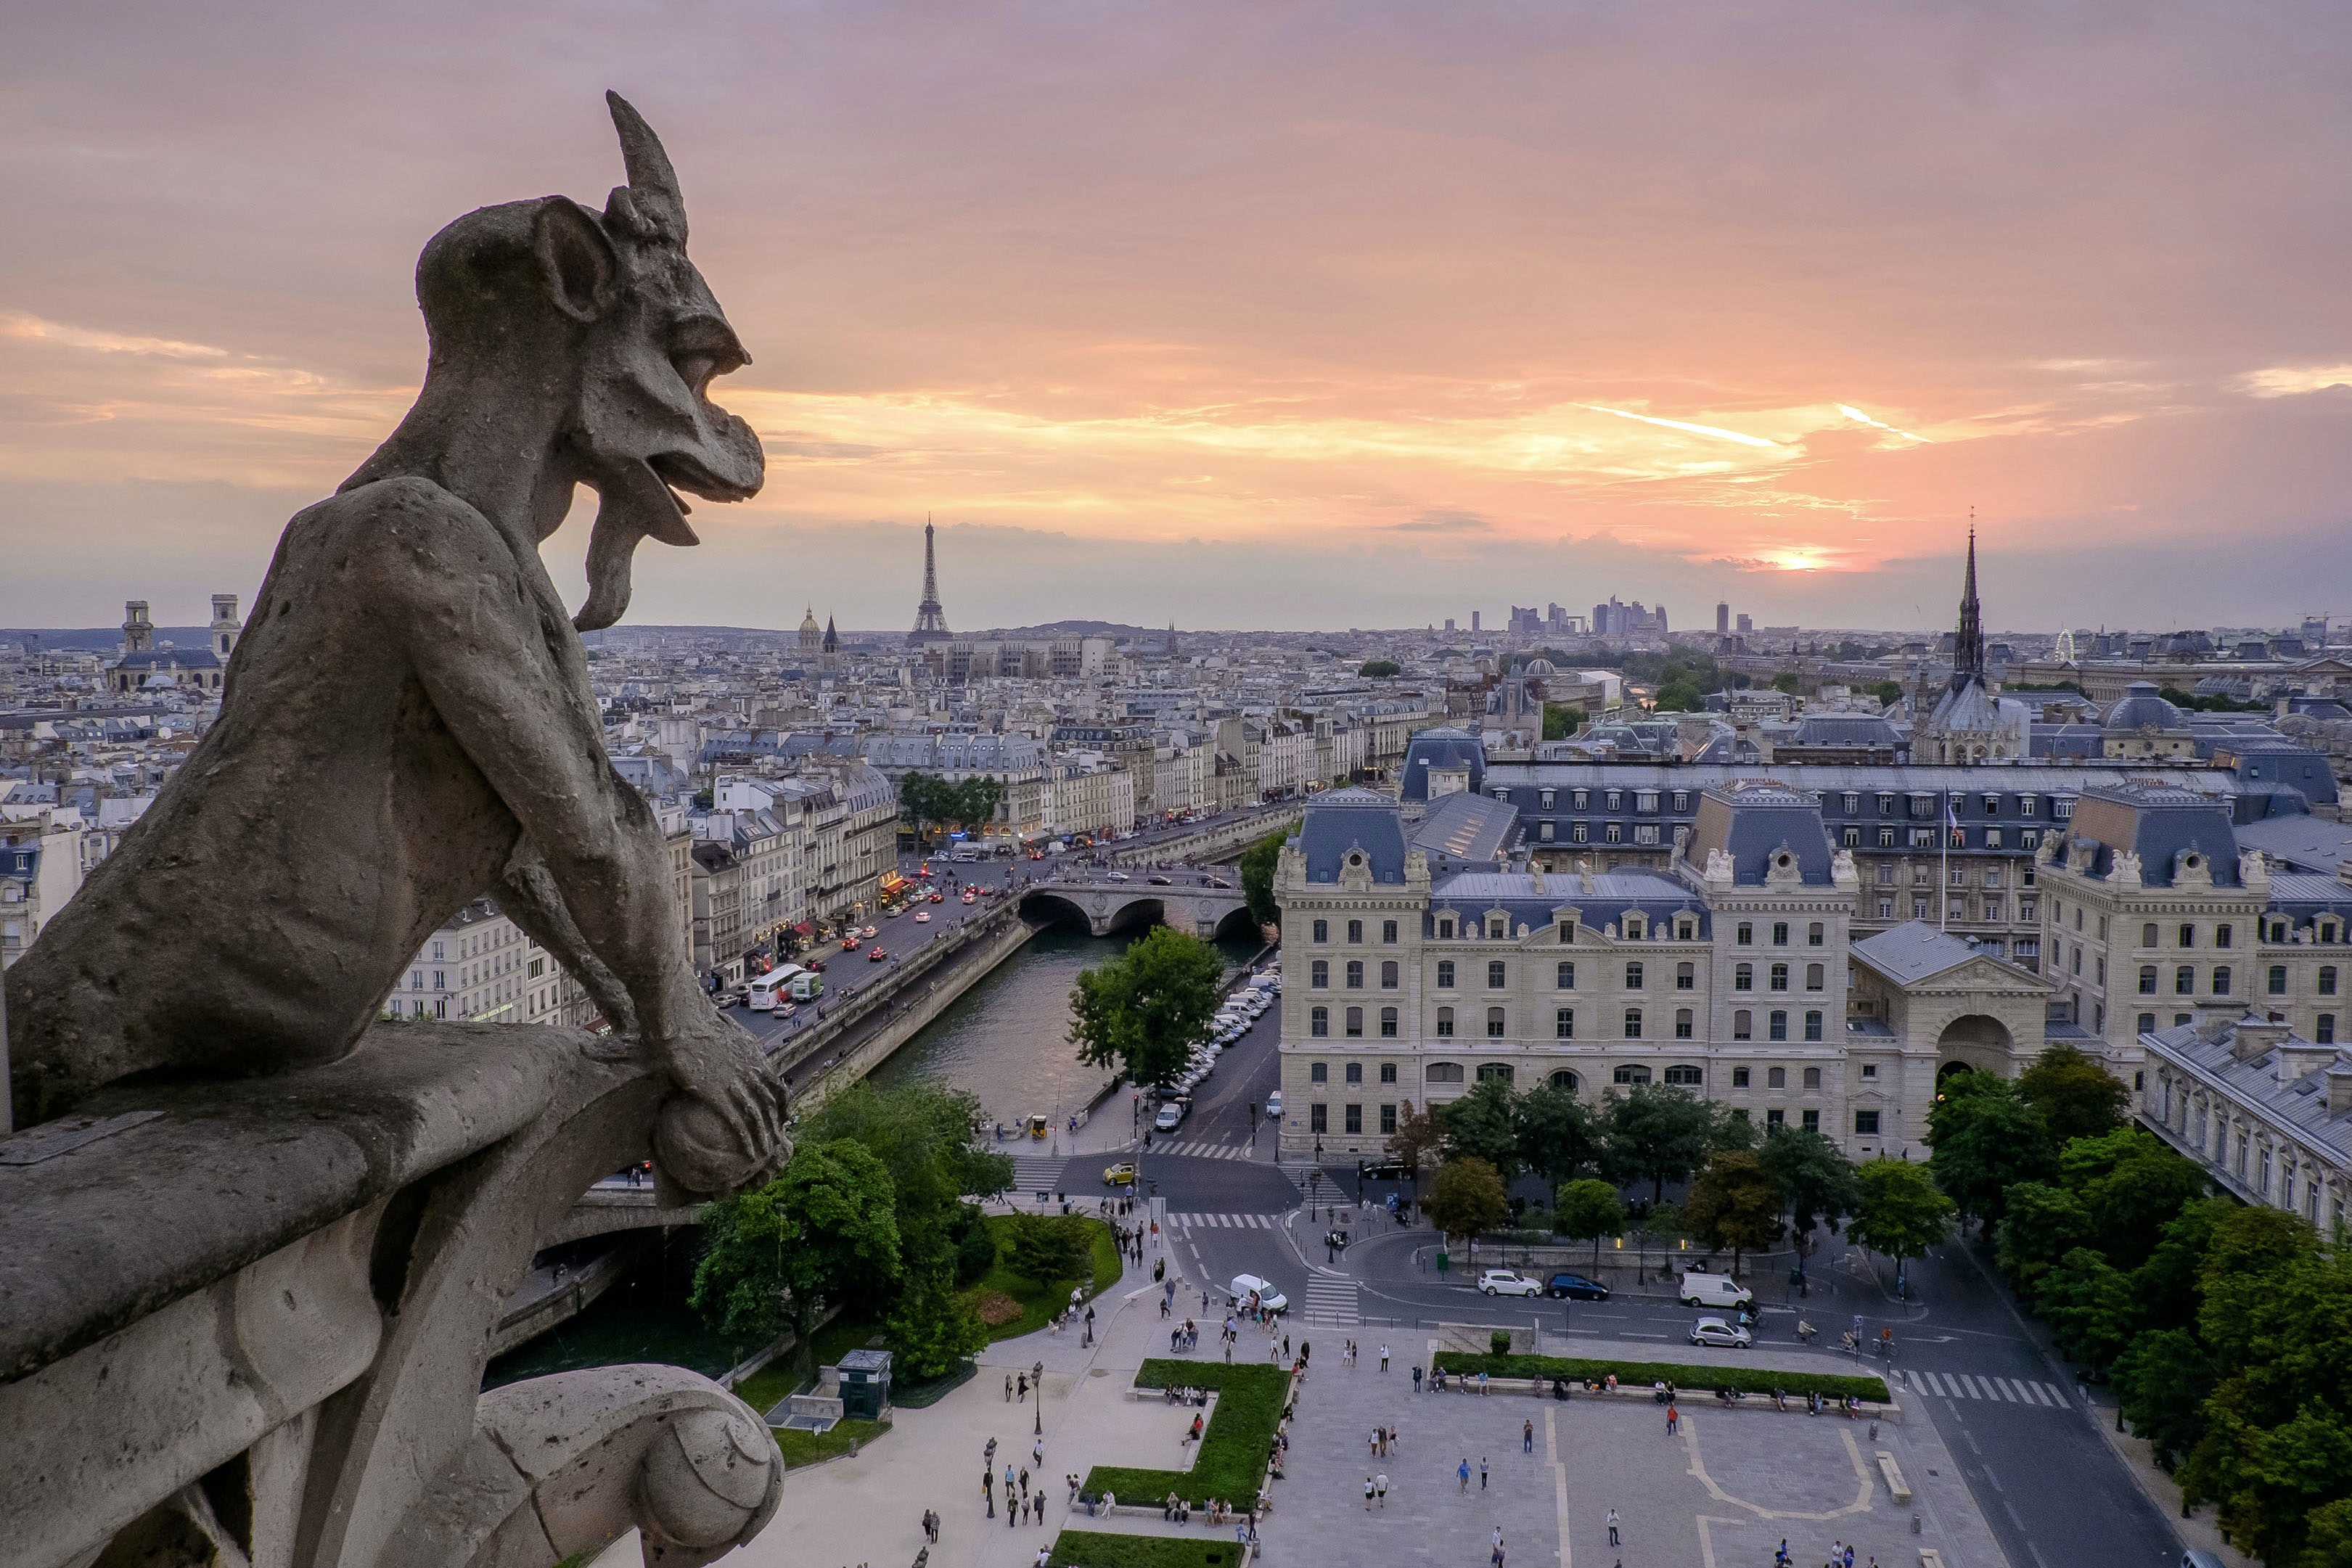 A gargoyle looks over the Notre-Dame Cathedral in Paris with a pale sunset lighting up the cityscape horizon.